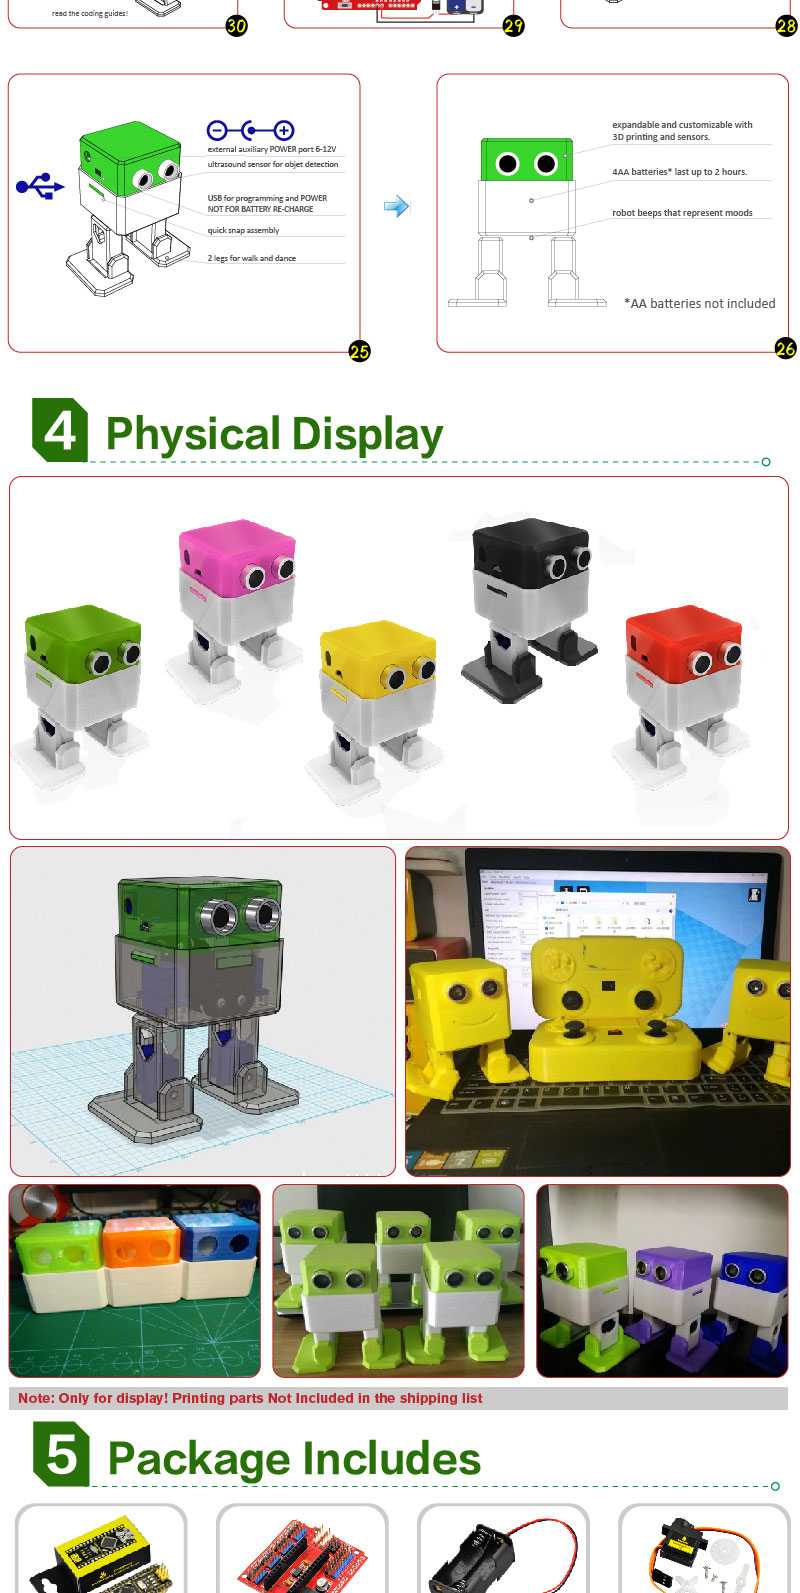 Electronic Parts DIY Kit for OTTO Robot DIY Beginner No Welding Required